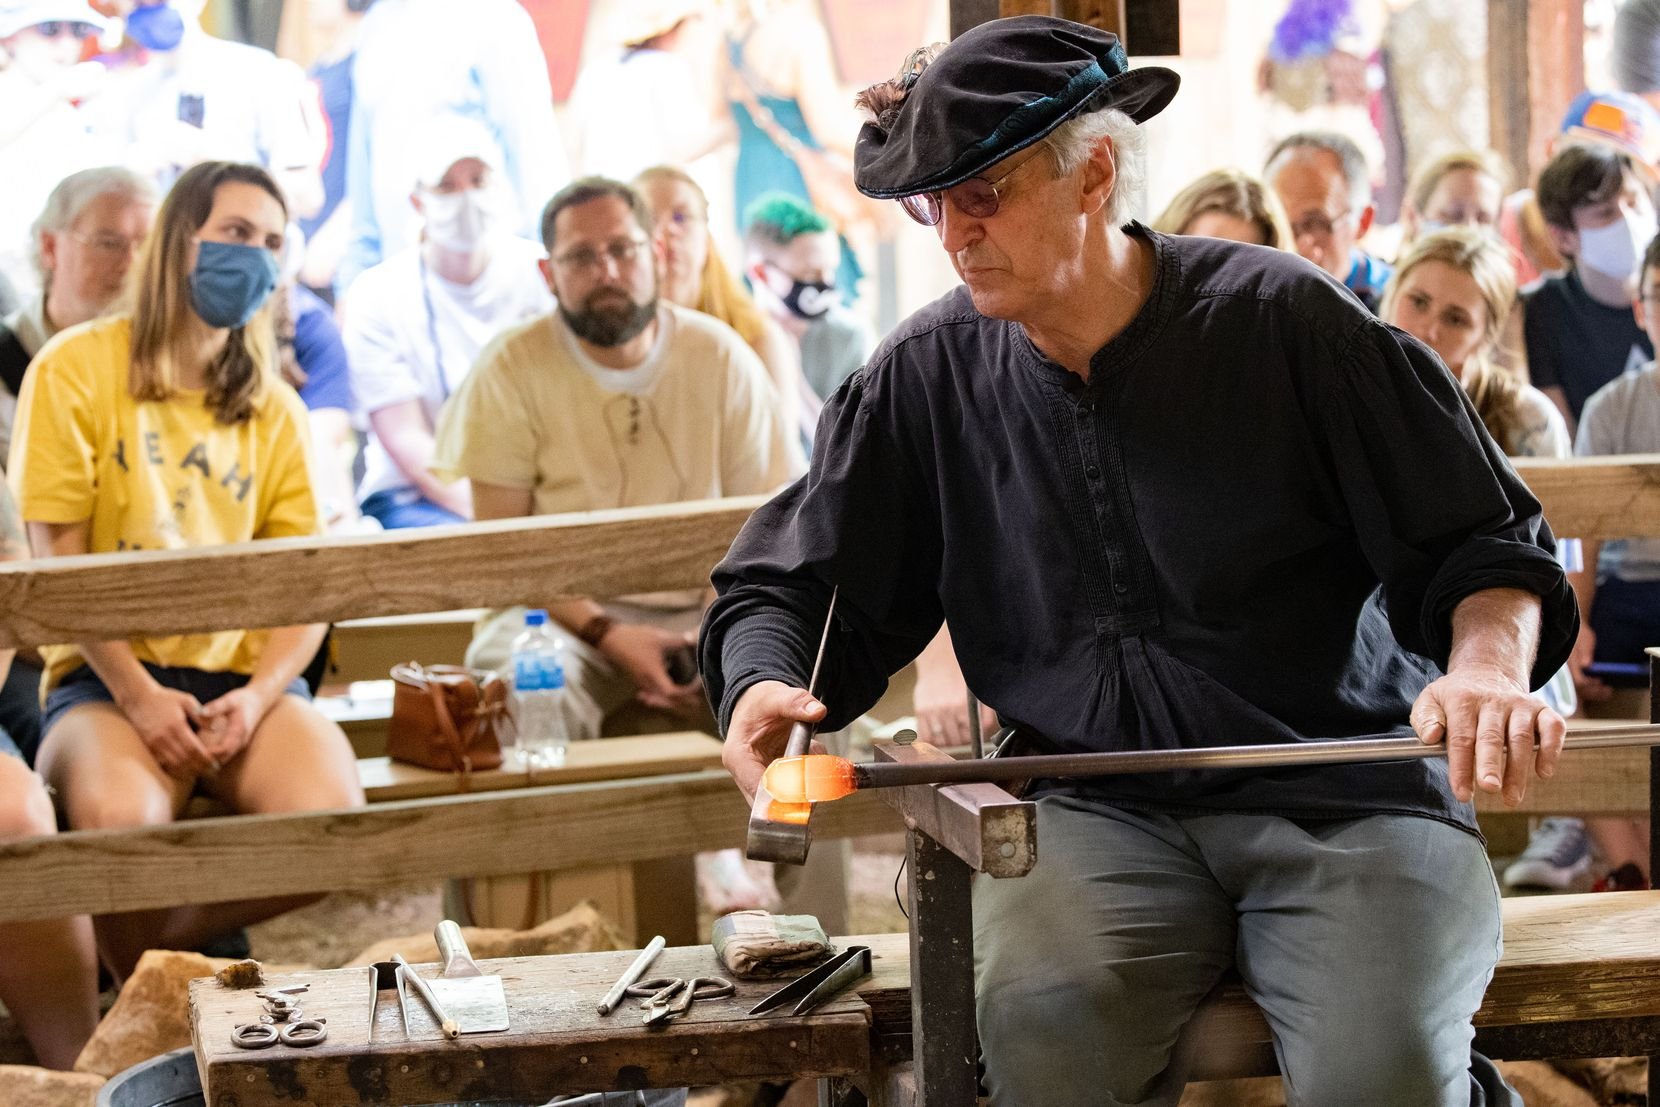 Peter Andres of Andres and Chapman demonstrates glassblowing, one of the crafts featured by artisans at the festival.